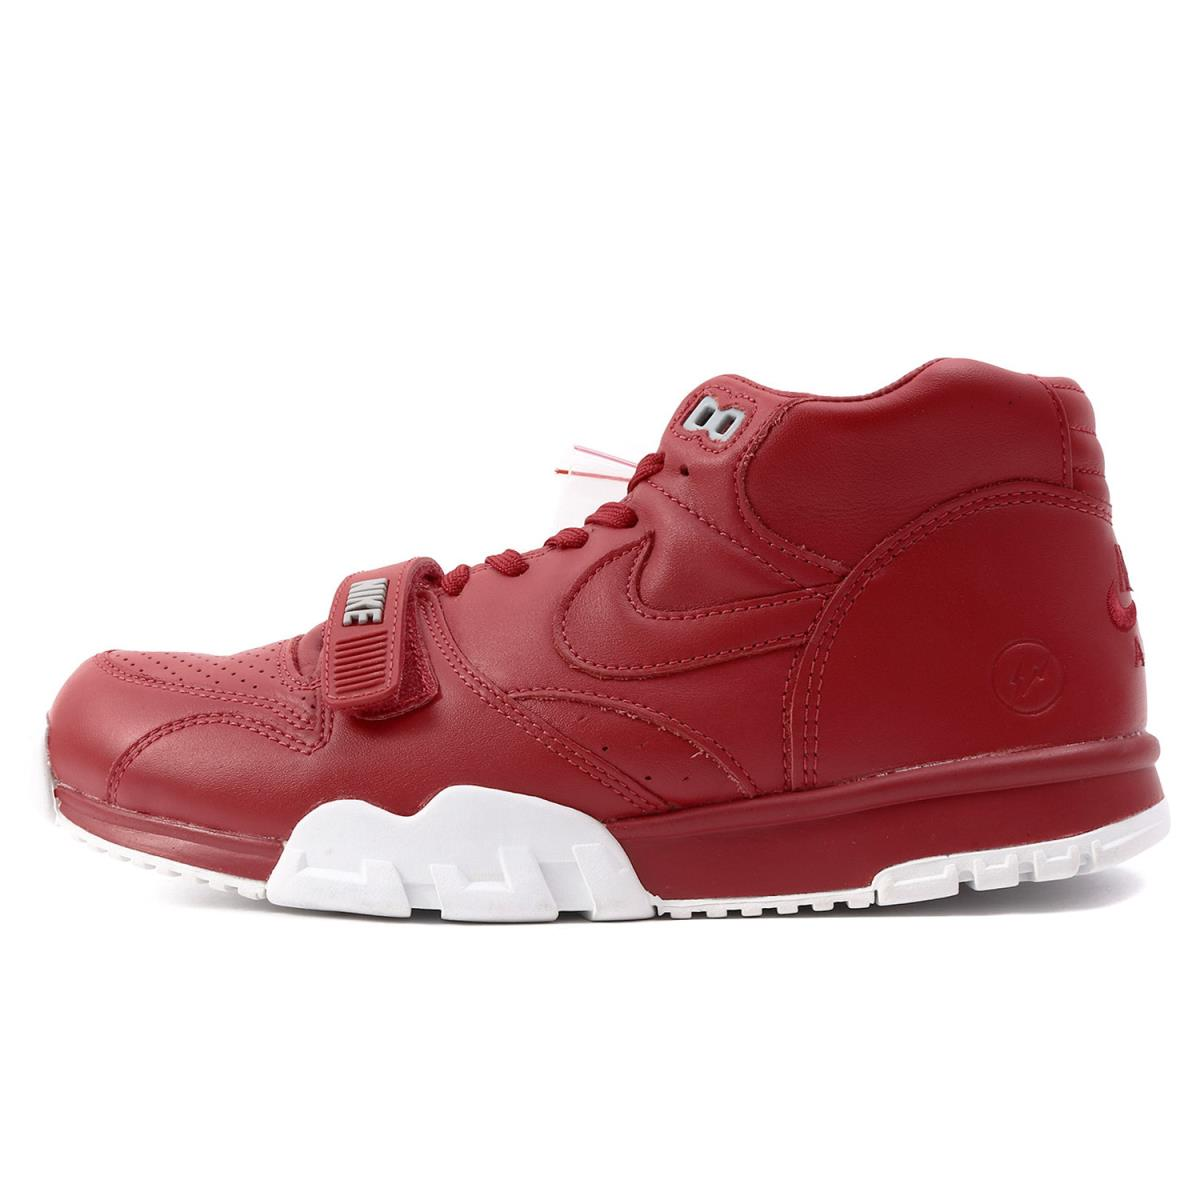 official photos bbe28 12f03 NIKE (Nike) X fragment design NikeLab AIR TRAINER 1 MID SP (806,942-661)  gym red US10.5(28.5cm)